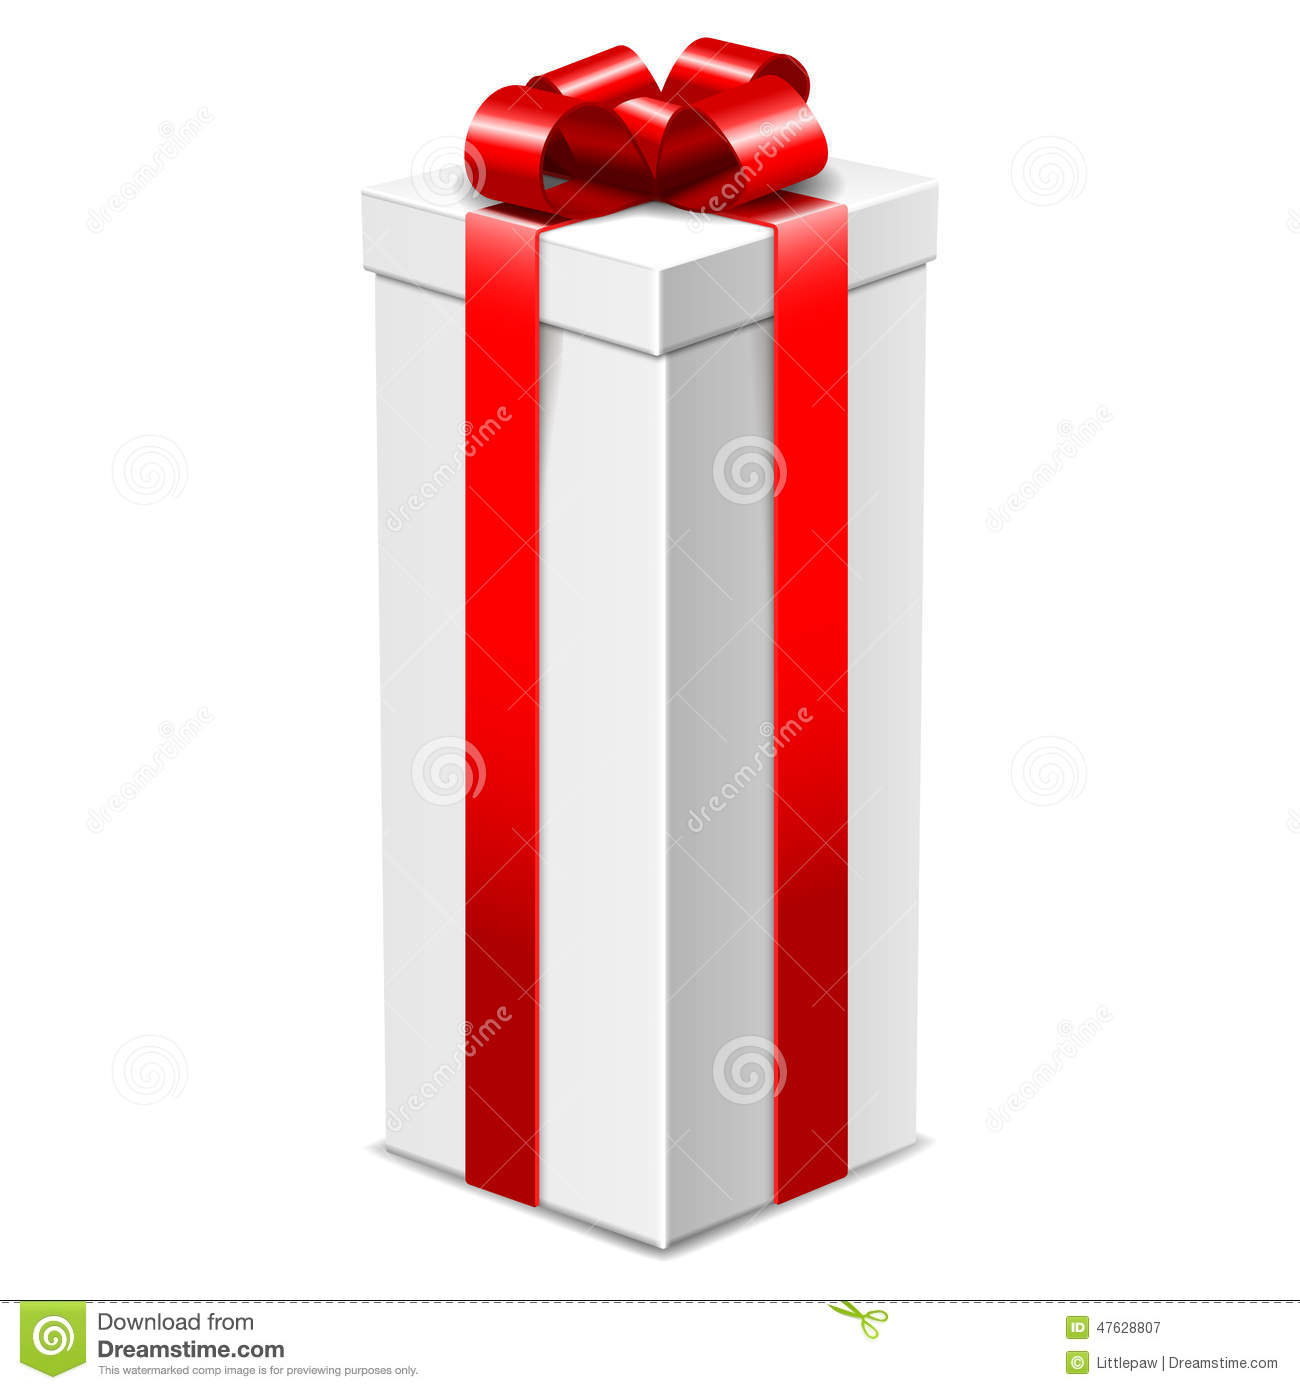 How to Present a Romantic Gift